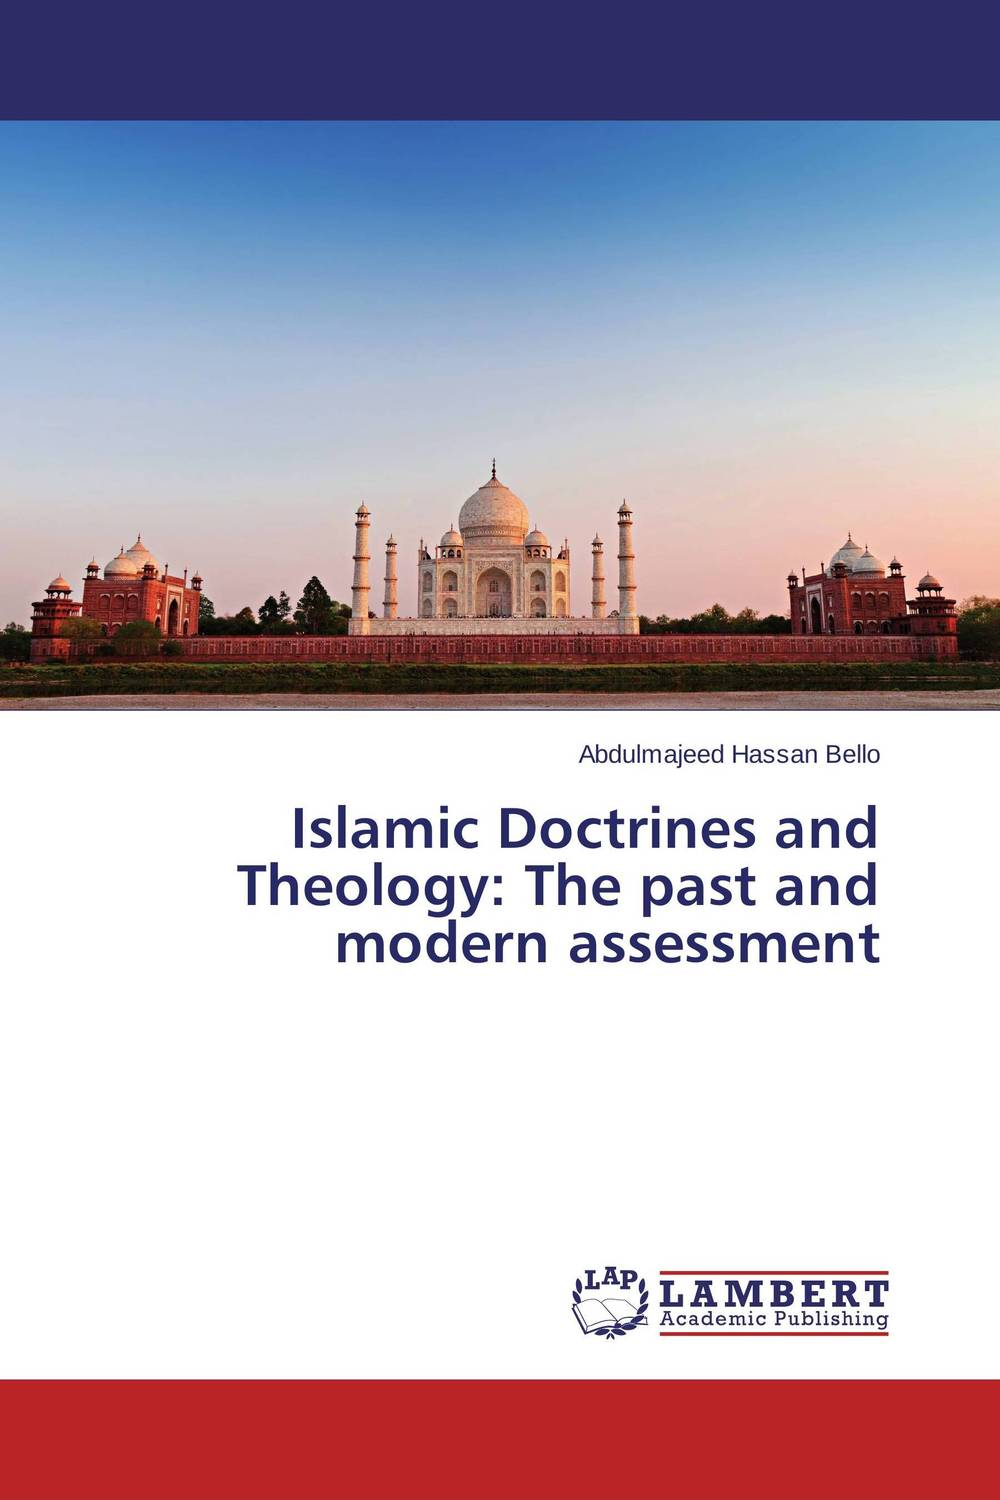 Islamic Doctrines and Theology: The past and modern assessment sense and sensibility